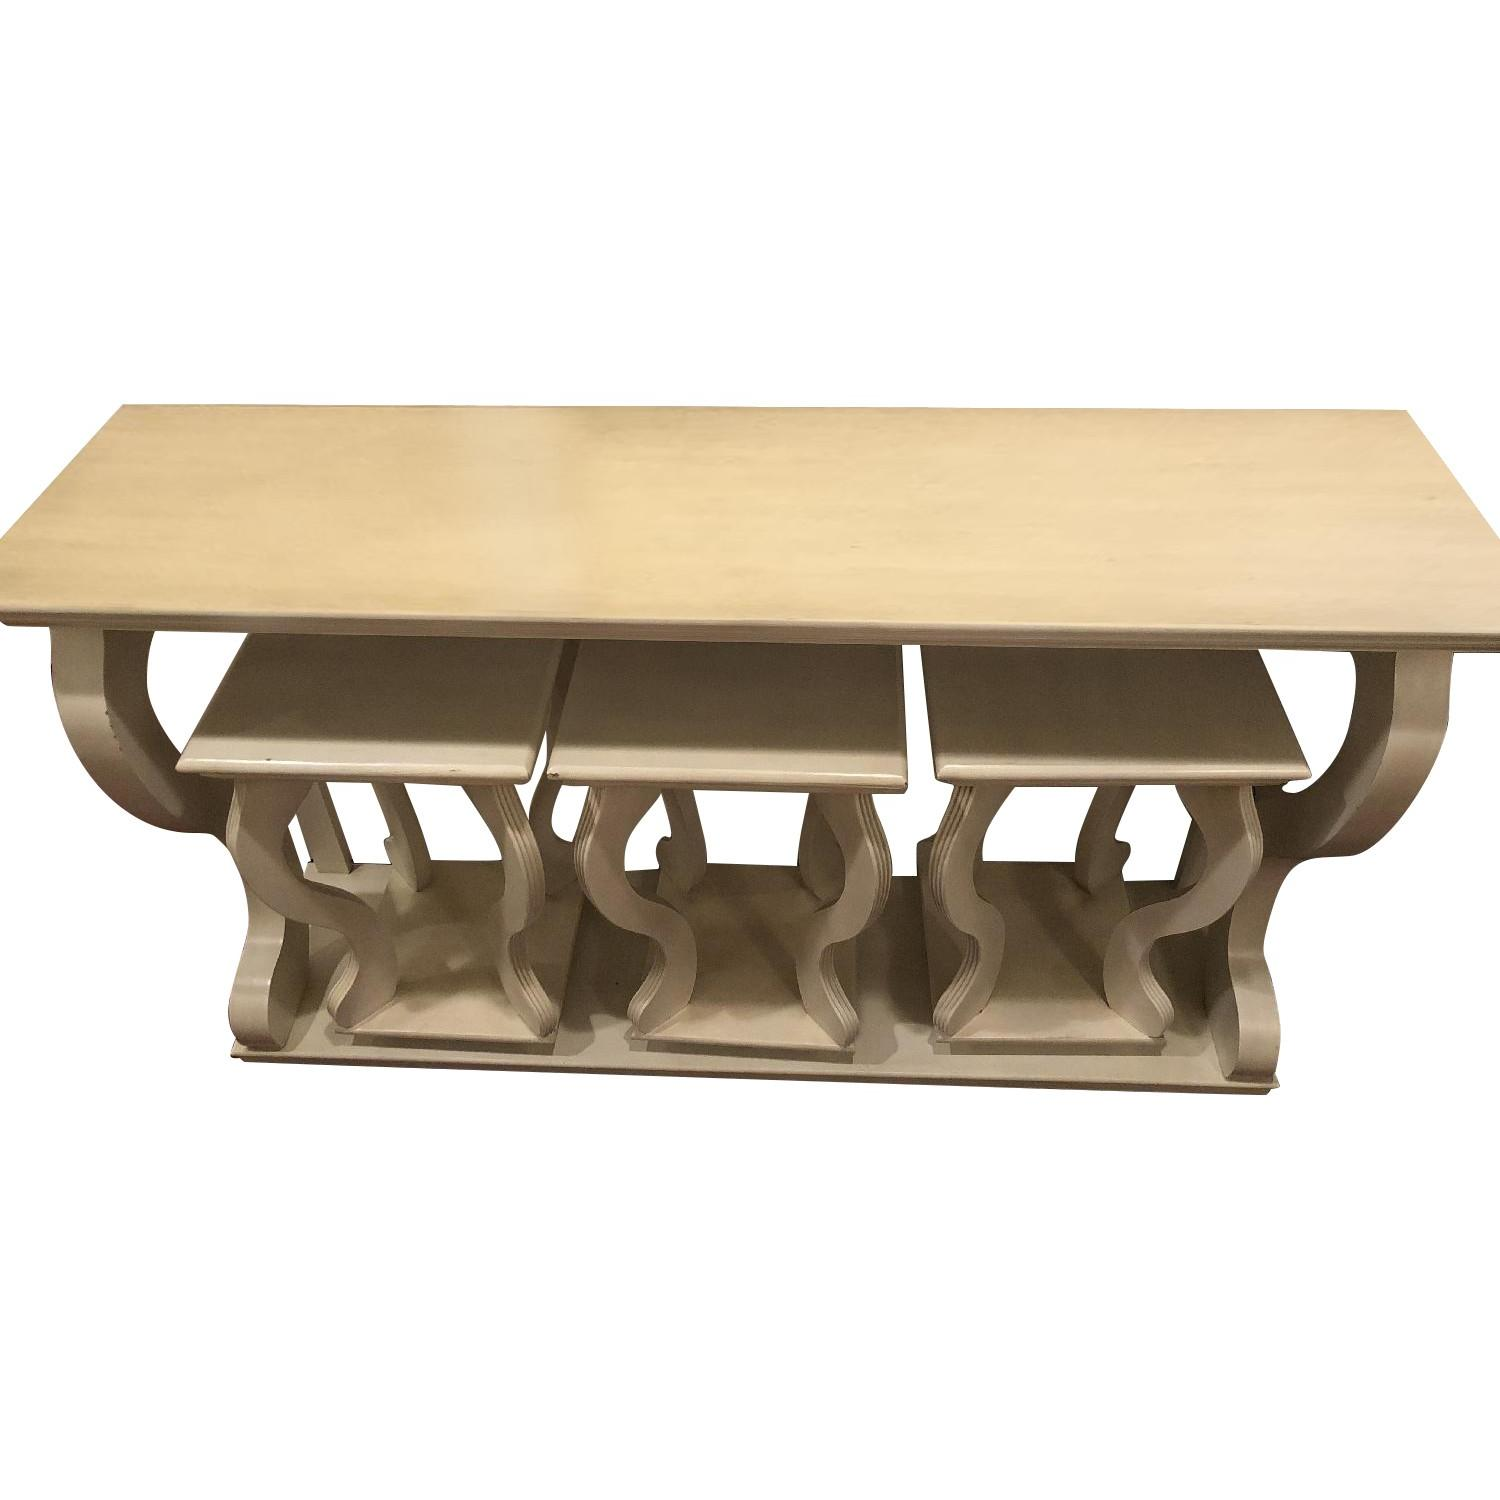 Remarkable Breakfast Bar Table Matching Stools Breakfast Bar Table Matching Stools Aptdeco Breakfast Bar Table Canada Breakfast Bar Table Set houzz 01 Breakfast Bar Table